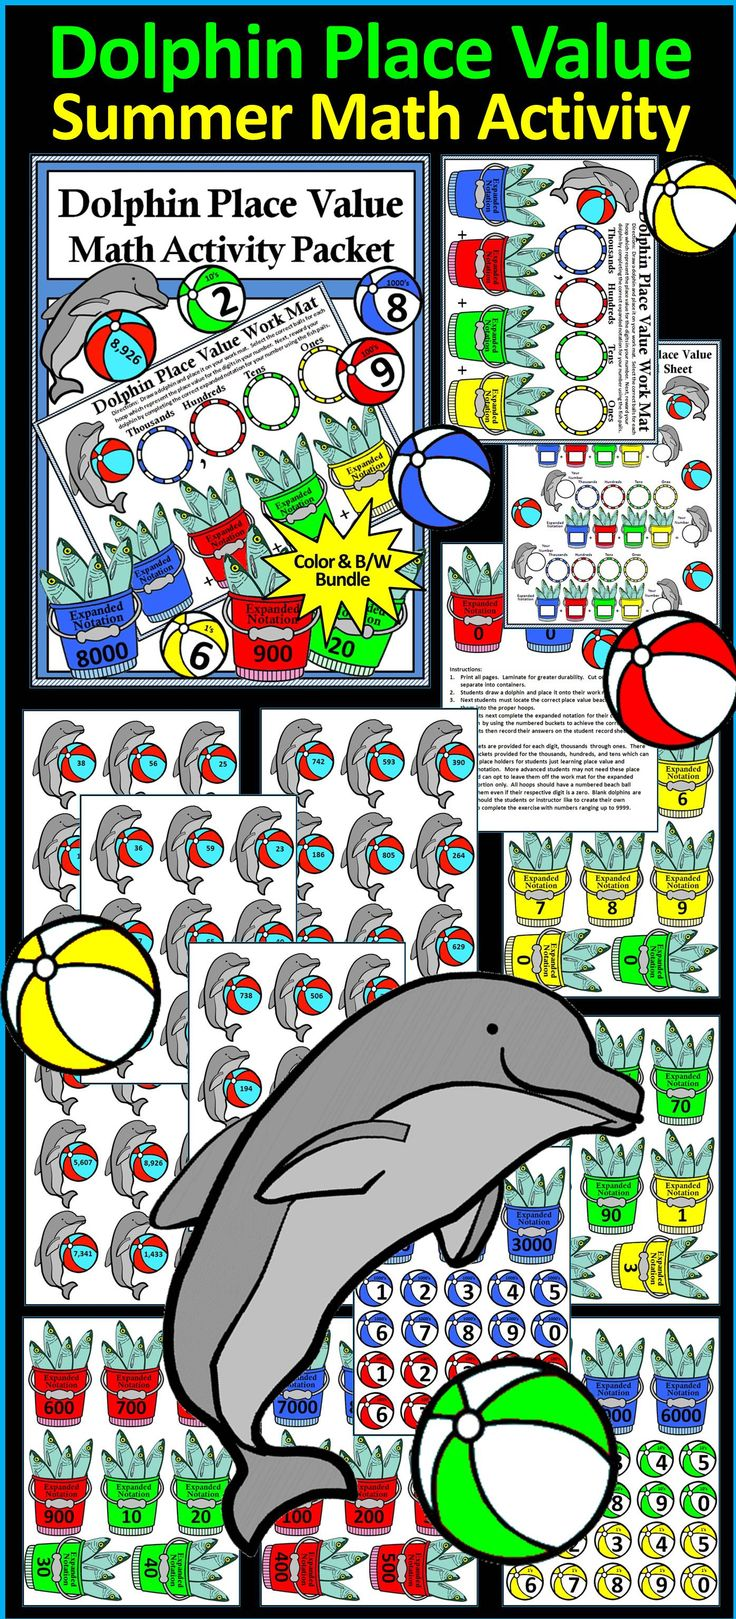 Bilingual dolphin counting card 6 clipart etc - Dolphin Math Dolphin Place Value Summer Math Activity